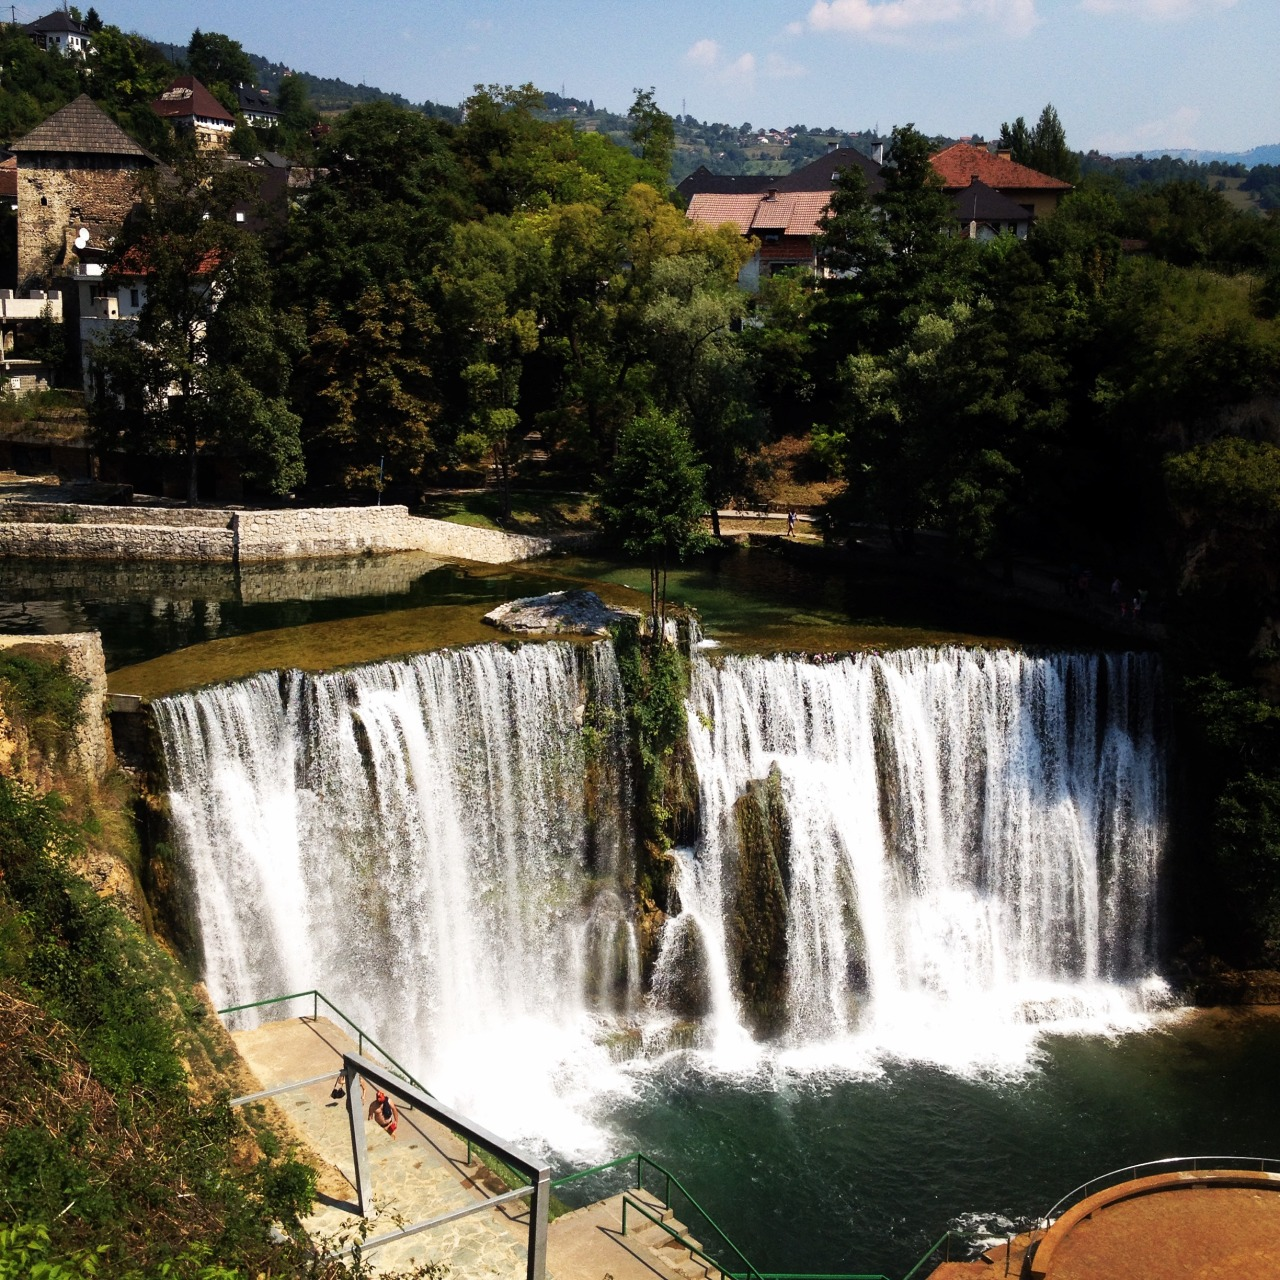 Jajce's urban waterfalls